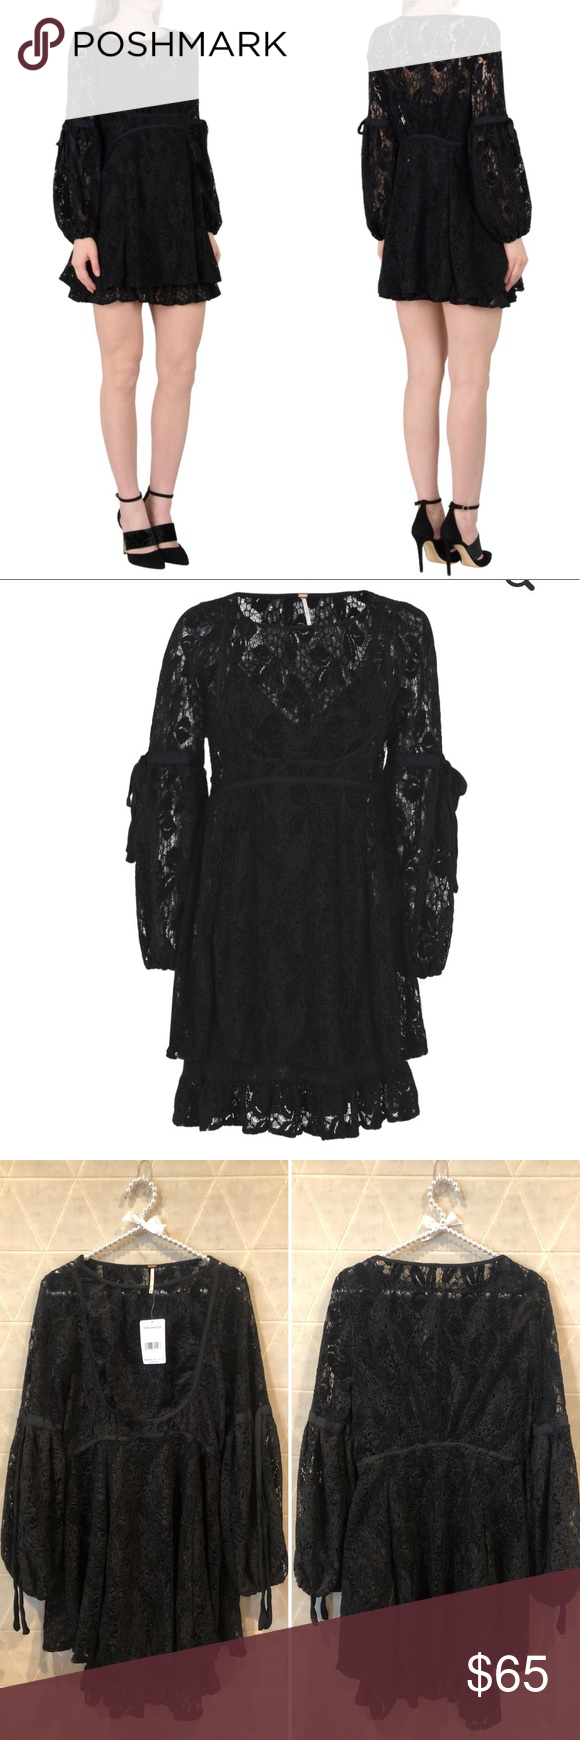 140a70baa91a2 Free People Ruby Lace Dress w Tie Sleeves black S Free People Ruby Lace  Dress w Tie Sleeves black S NWT Cami-style underlay Adjustable straps Tie  sleeves ...